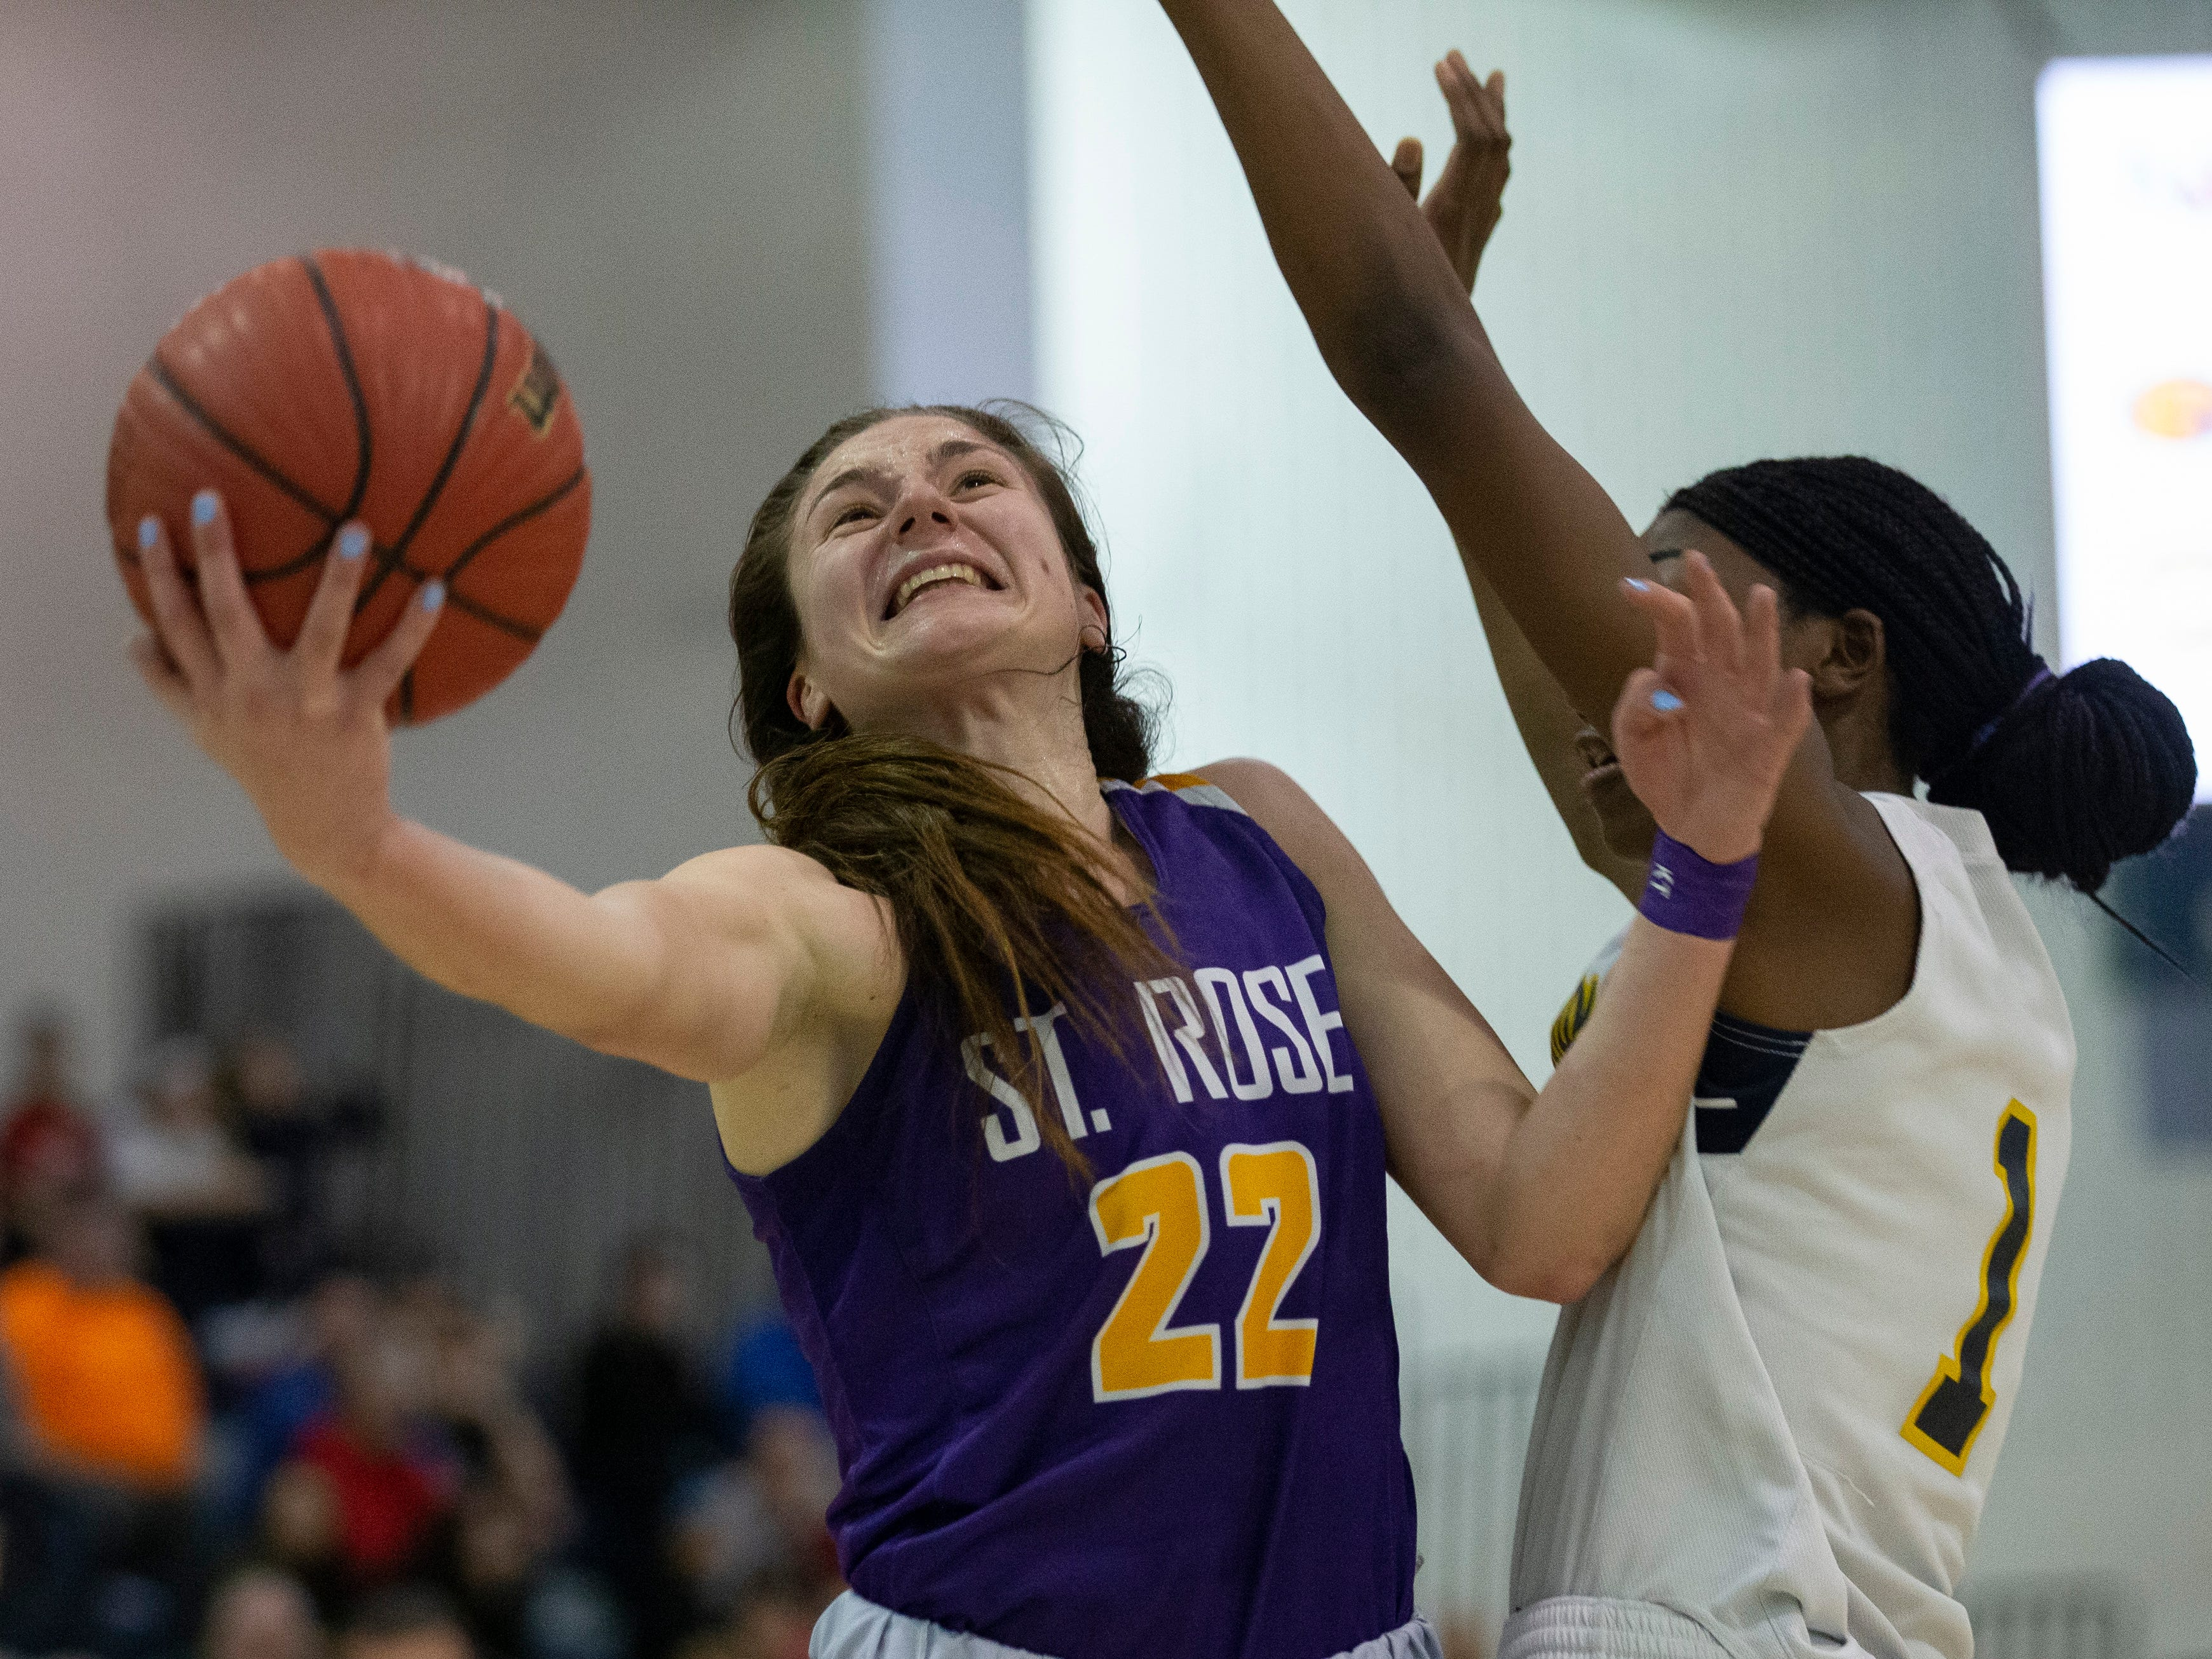 Brynn Farrell, St. Rose drives to the basket.  St Rose Girls Basketball vs Franklin High School in NJSIAA Tournament of Champions Semifinal in Toms River on March 14, 2019.